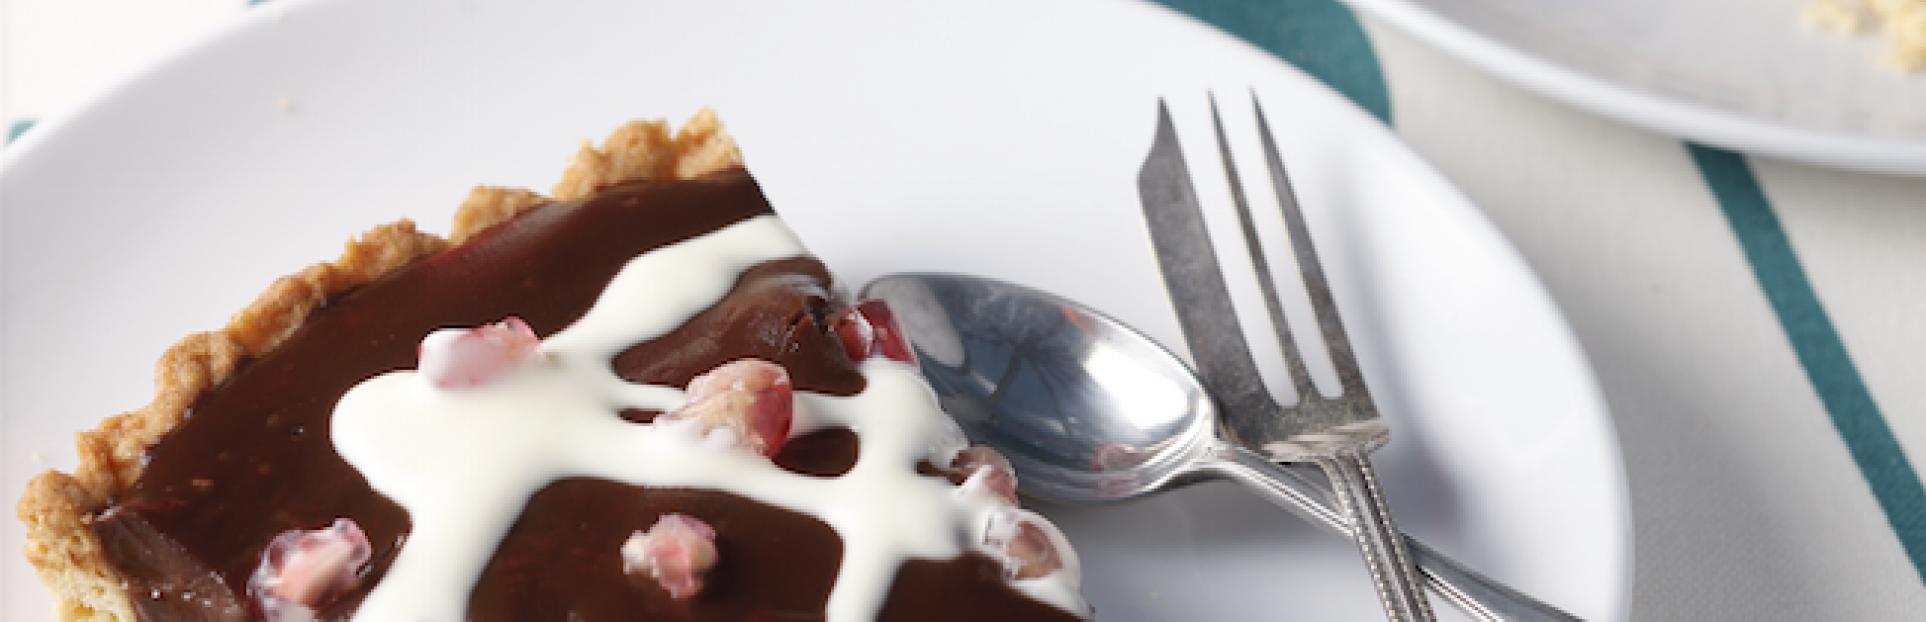 An image of a chocolate ganache tart with pomegranate seeds and a bottle of fresh dessert cream beside it